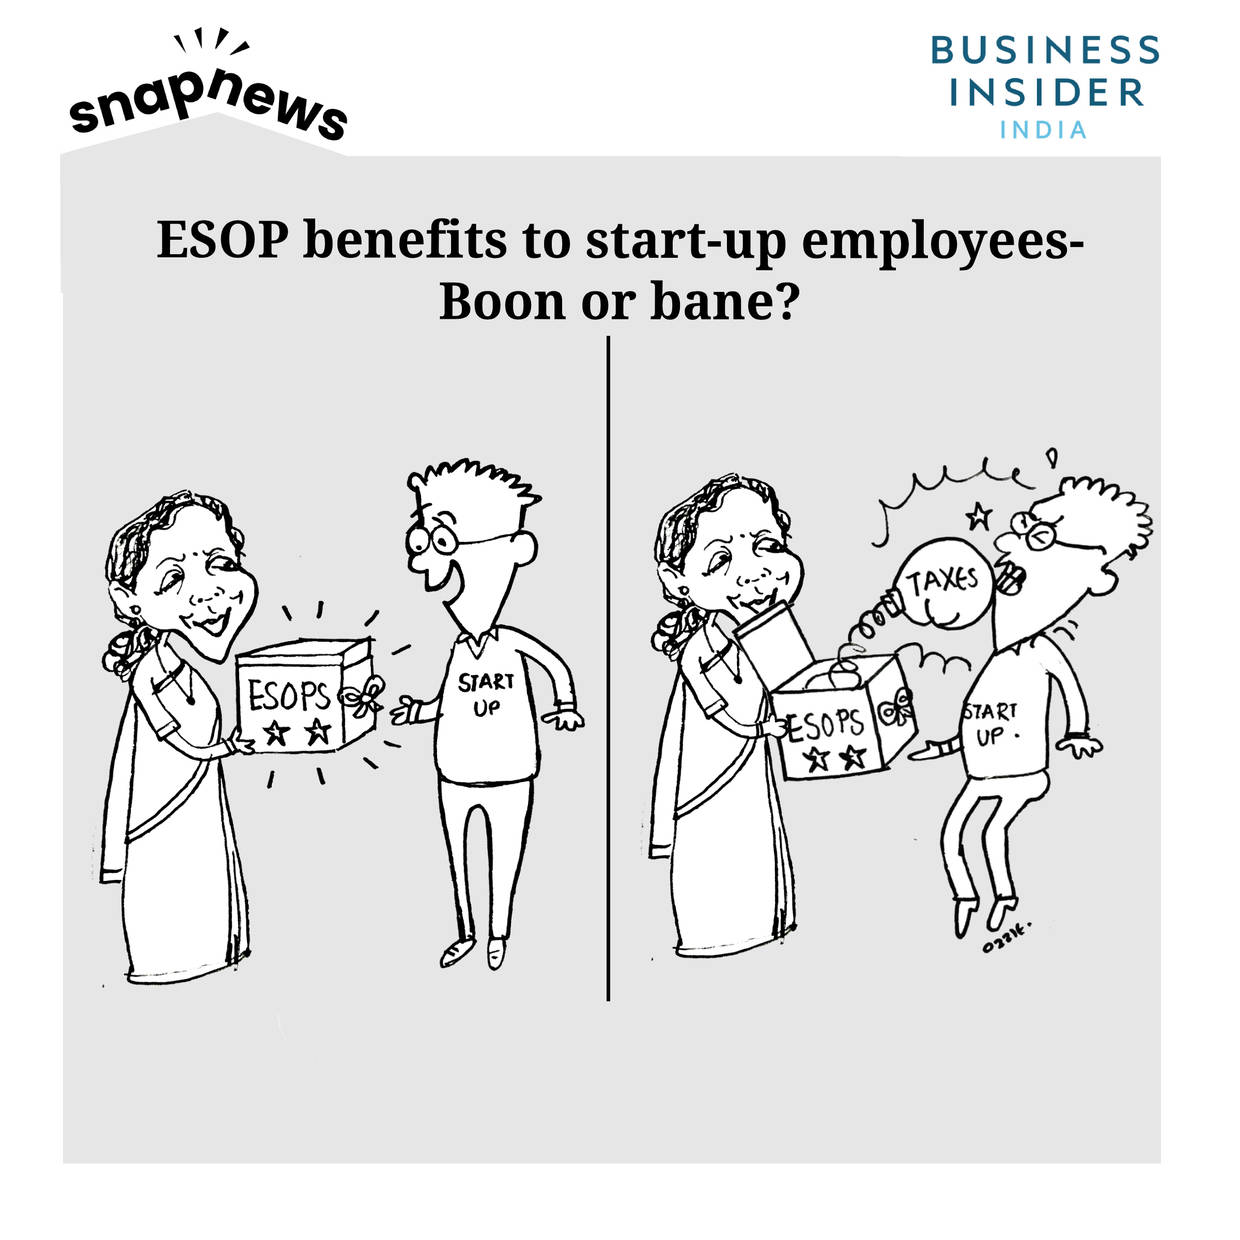 There are serious flaws in Budget 2020's ESOP gift for startups